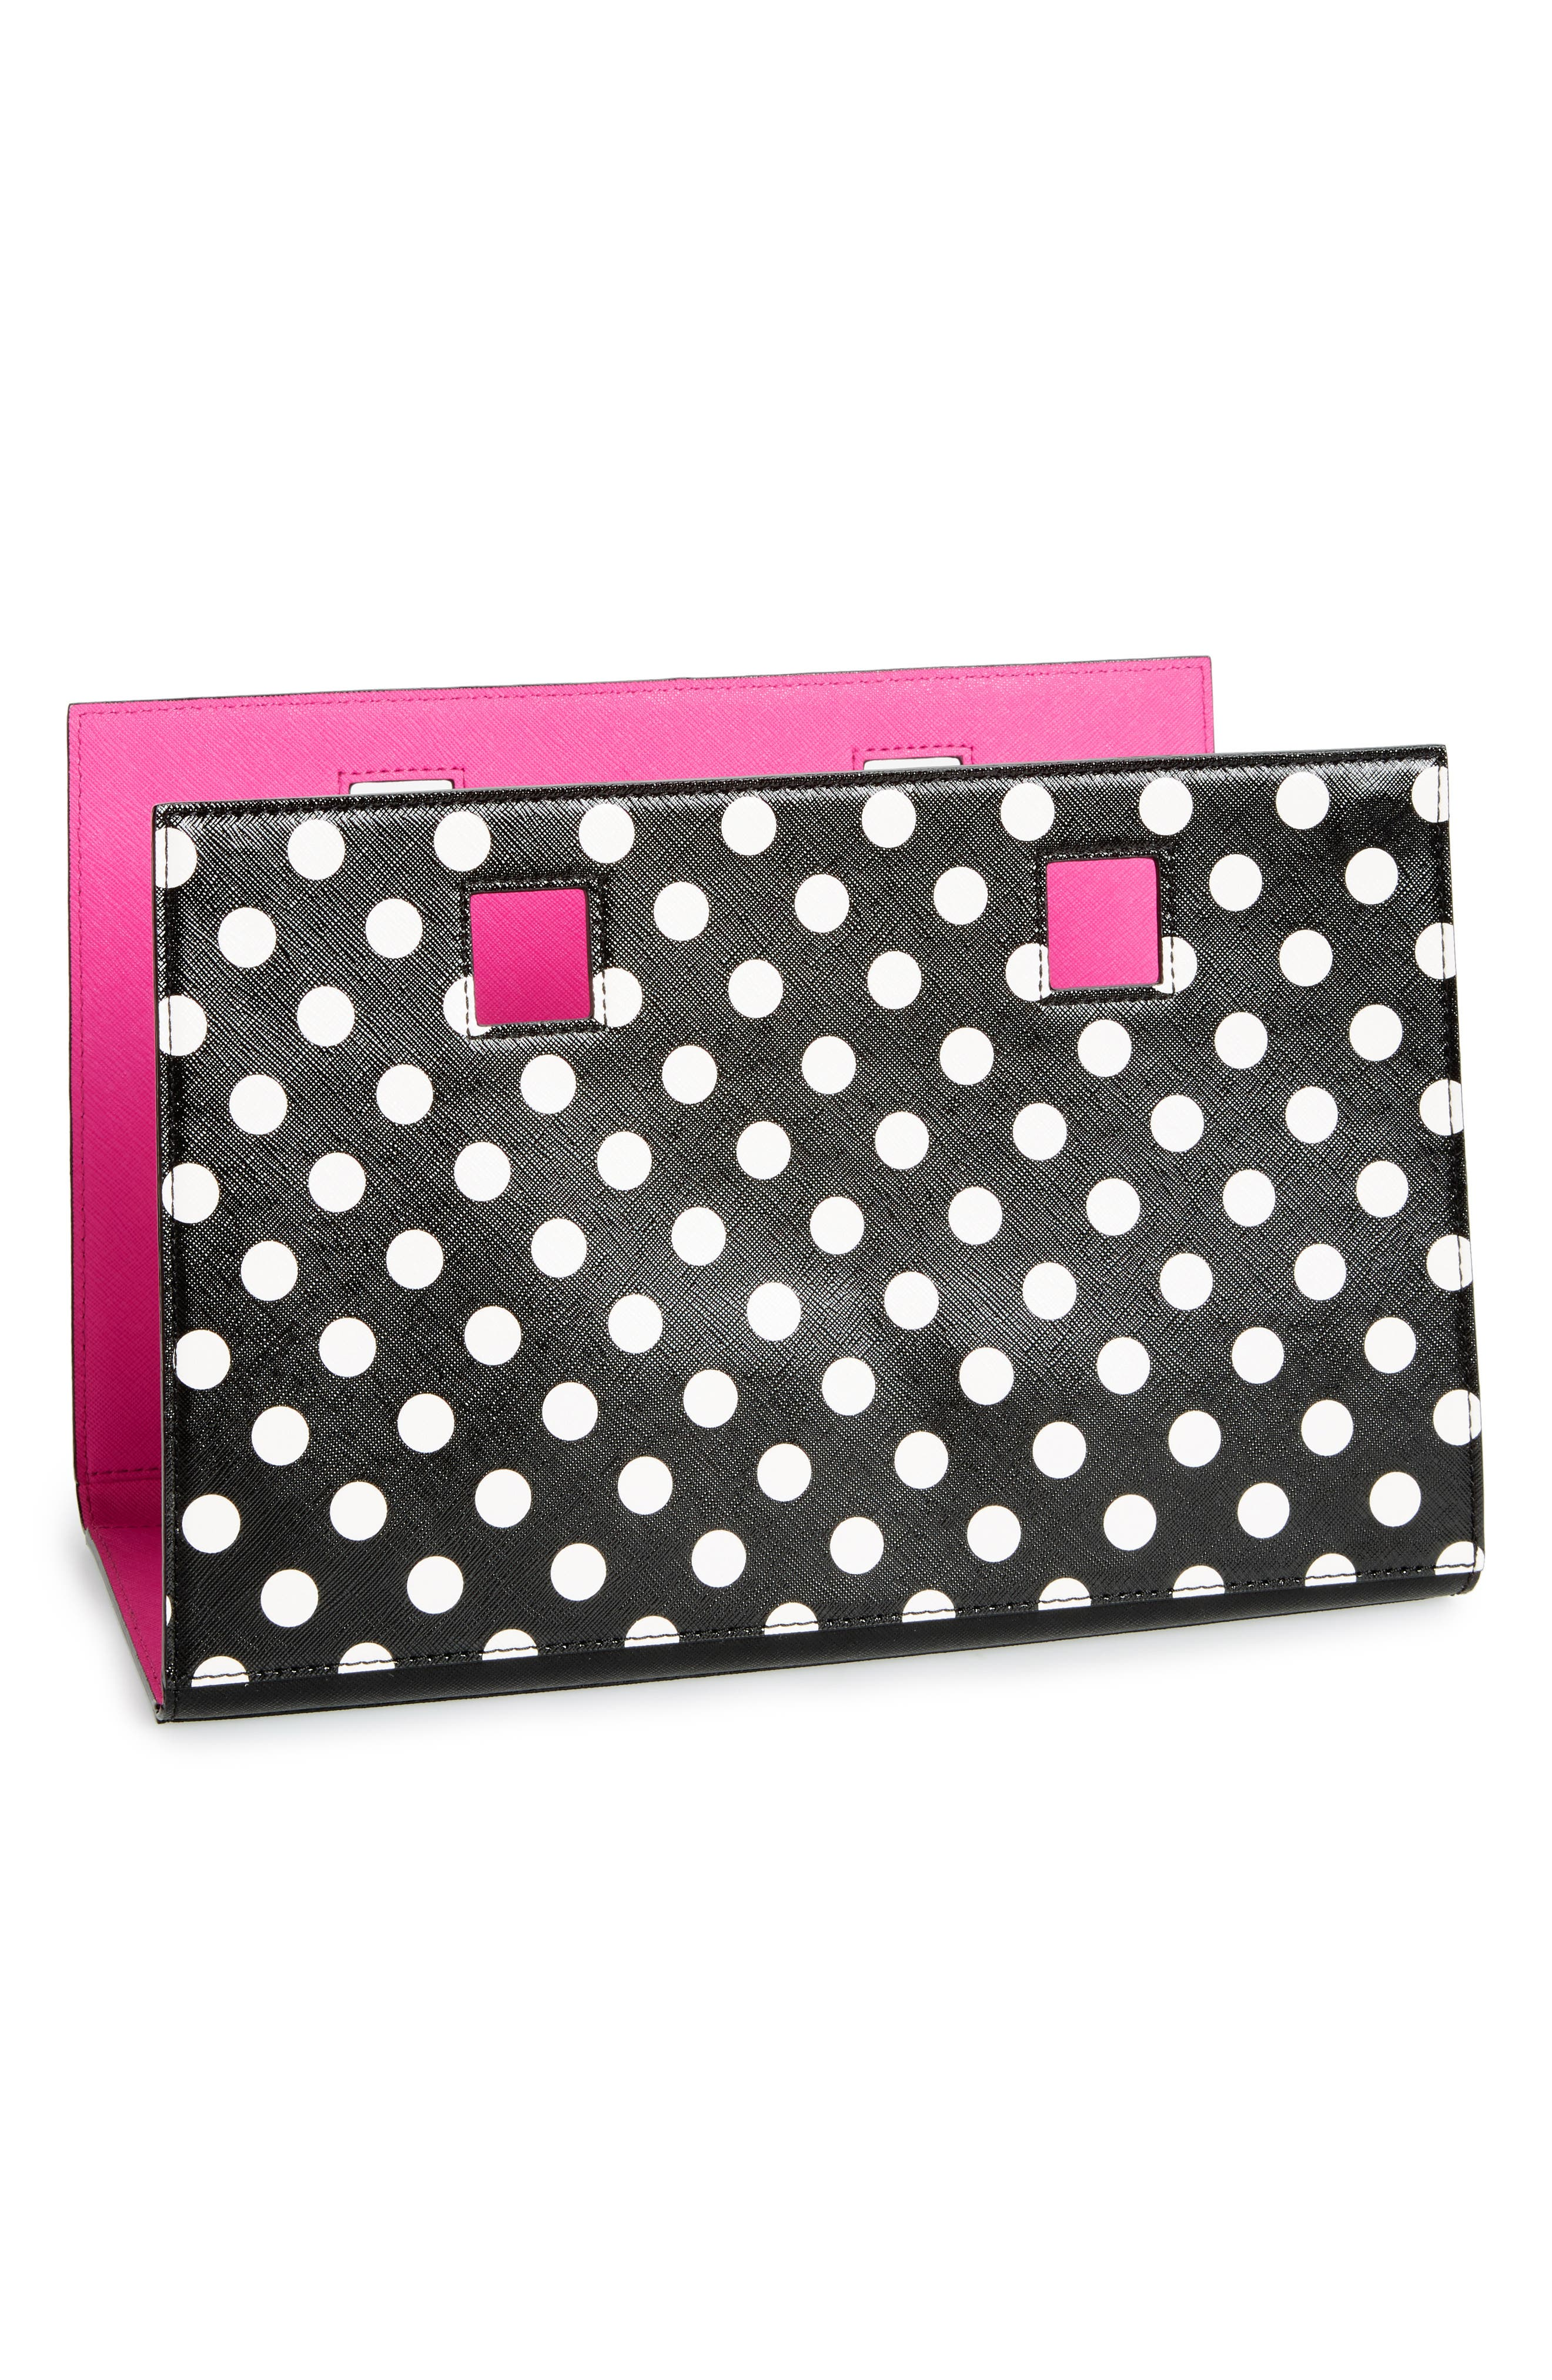 make it mine reversible polka dot/solid leather snap-on accent flap,                             Main thumbnail 1, color,                             010